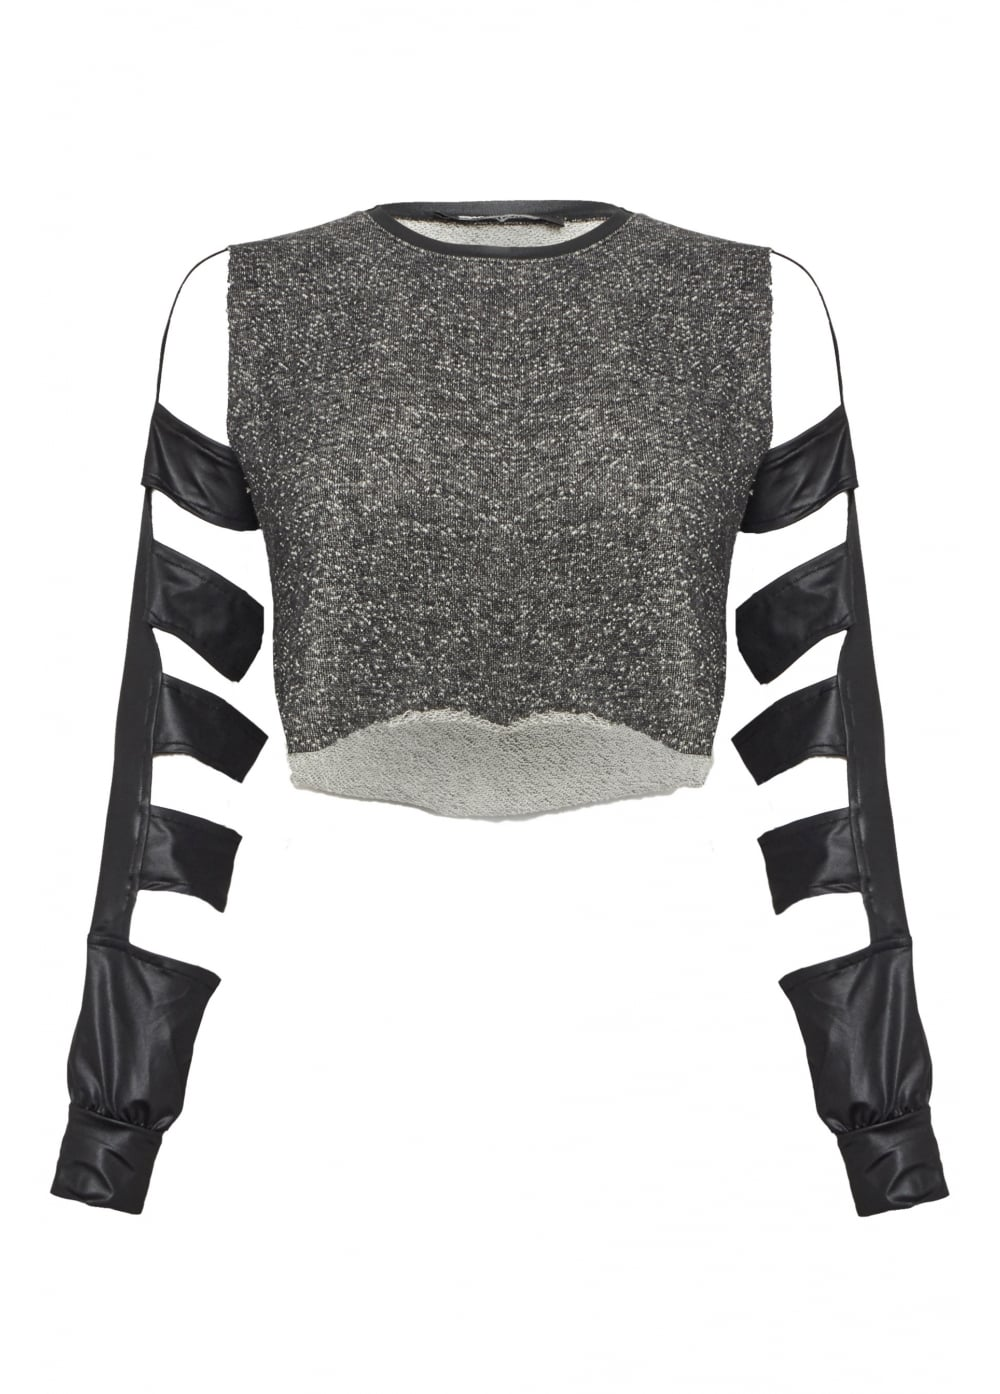 Cut Out Faux Leather Long Sleeve Top - Size: L